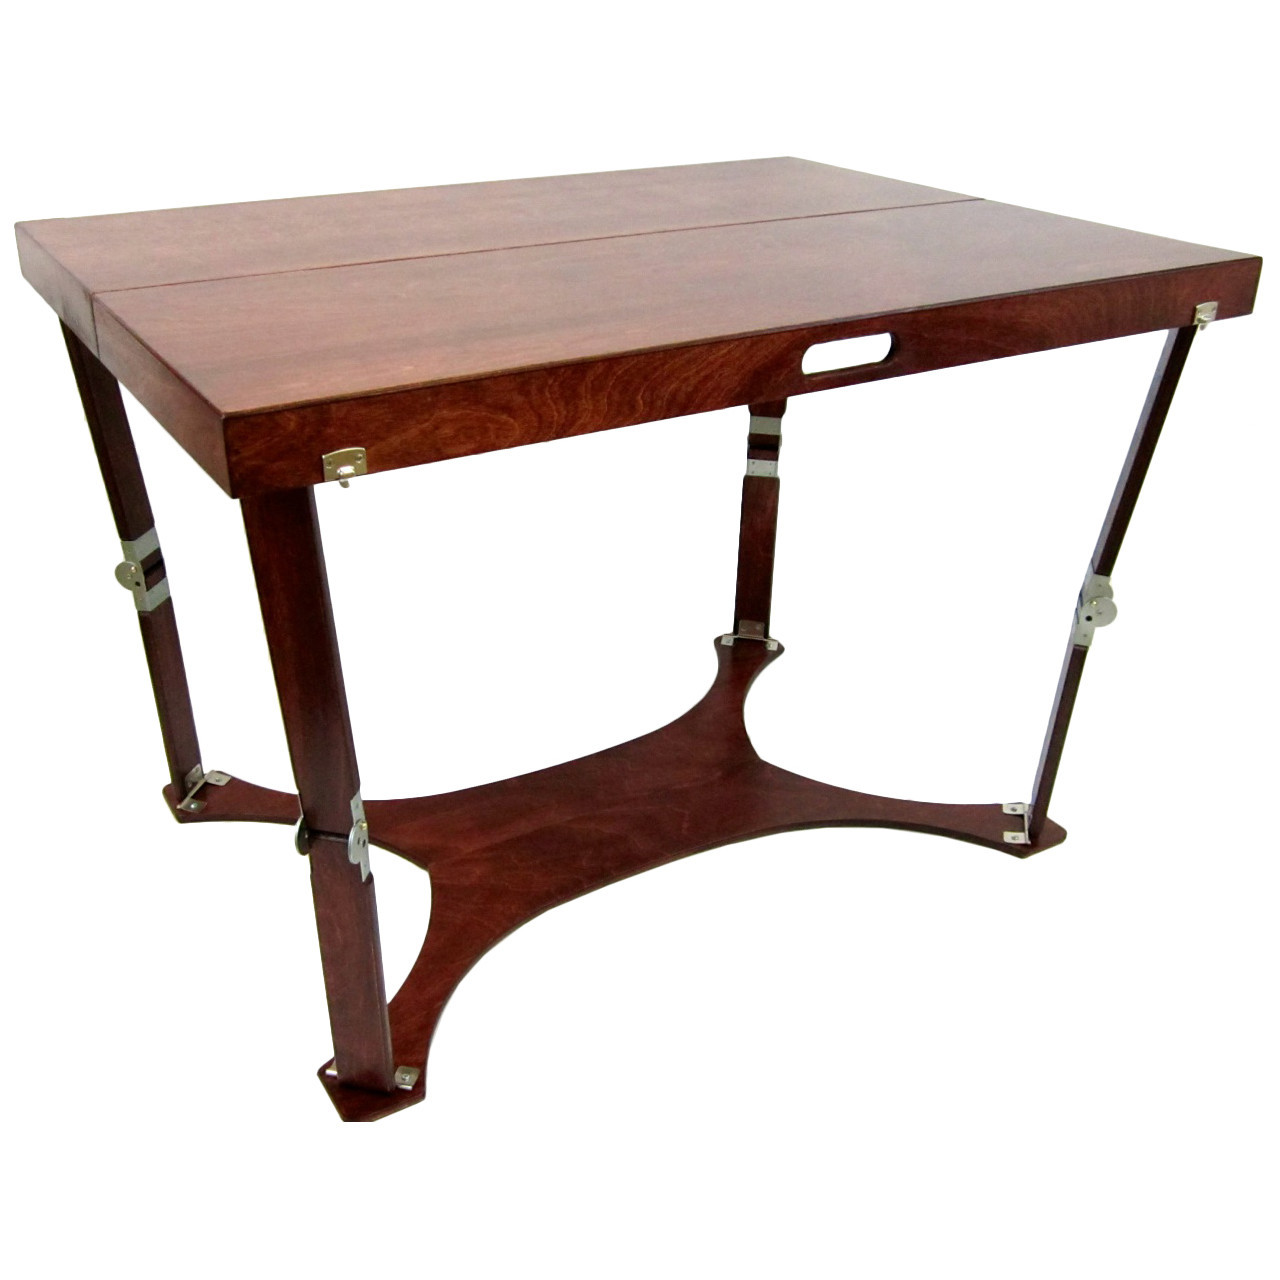 Best ideas about Foldable Dining Table . Save or Pin Spiderlegs Picnic Folding Dining Table & Reviews Now.